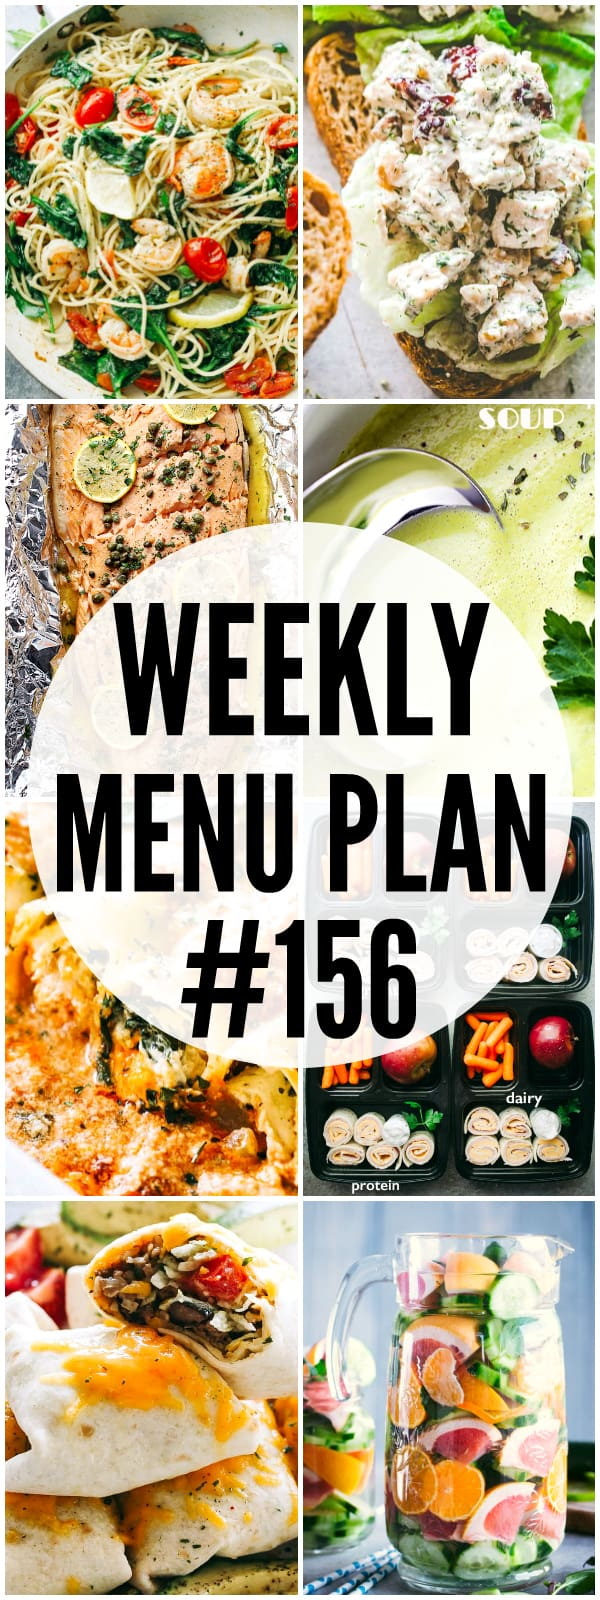 WEEKLY MENU PLAN (#156) -A delicious collection of dinner, side dish and dessert recipes to help you plan your weekly menu and make life easier for you!